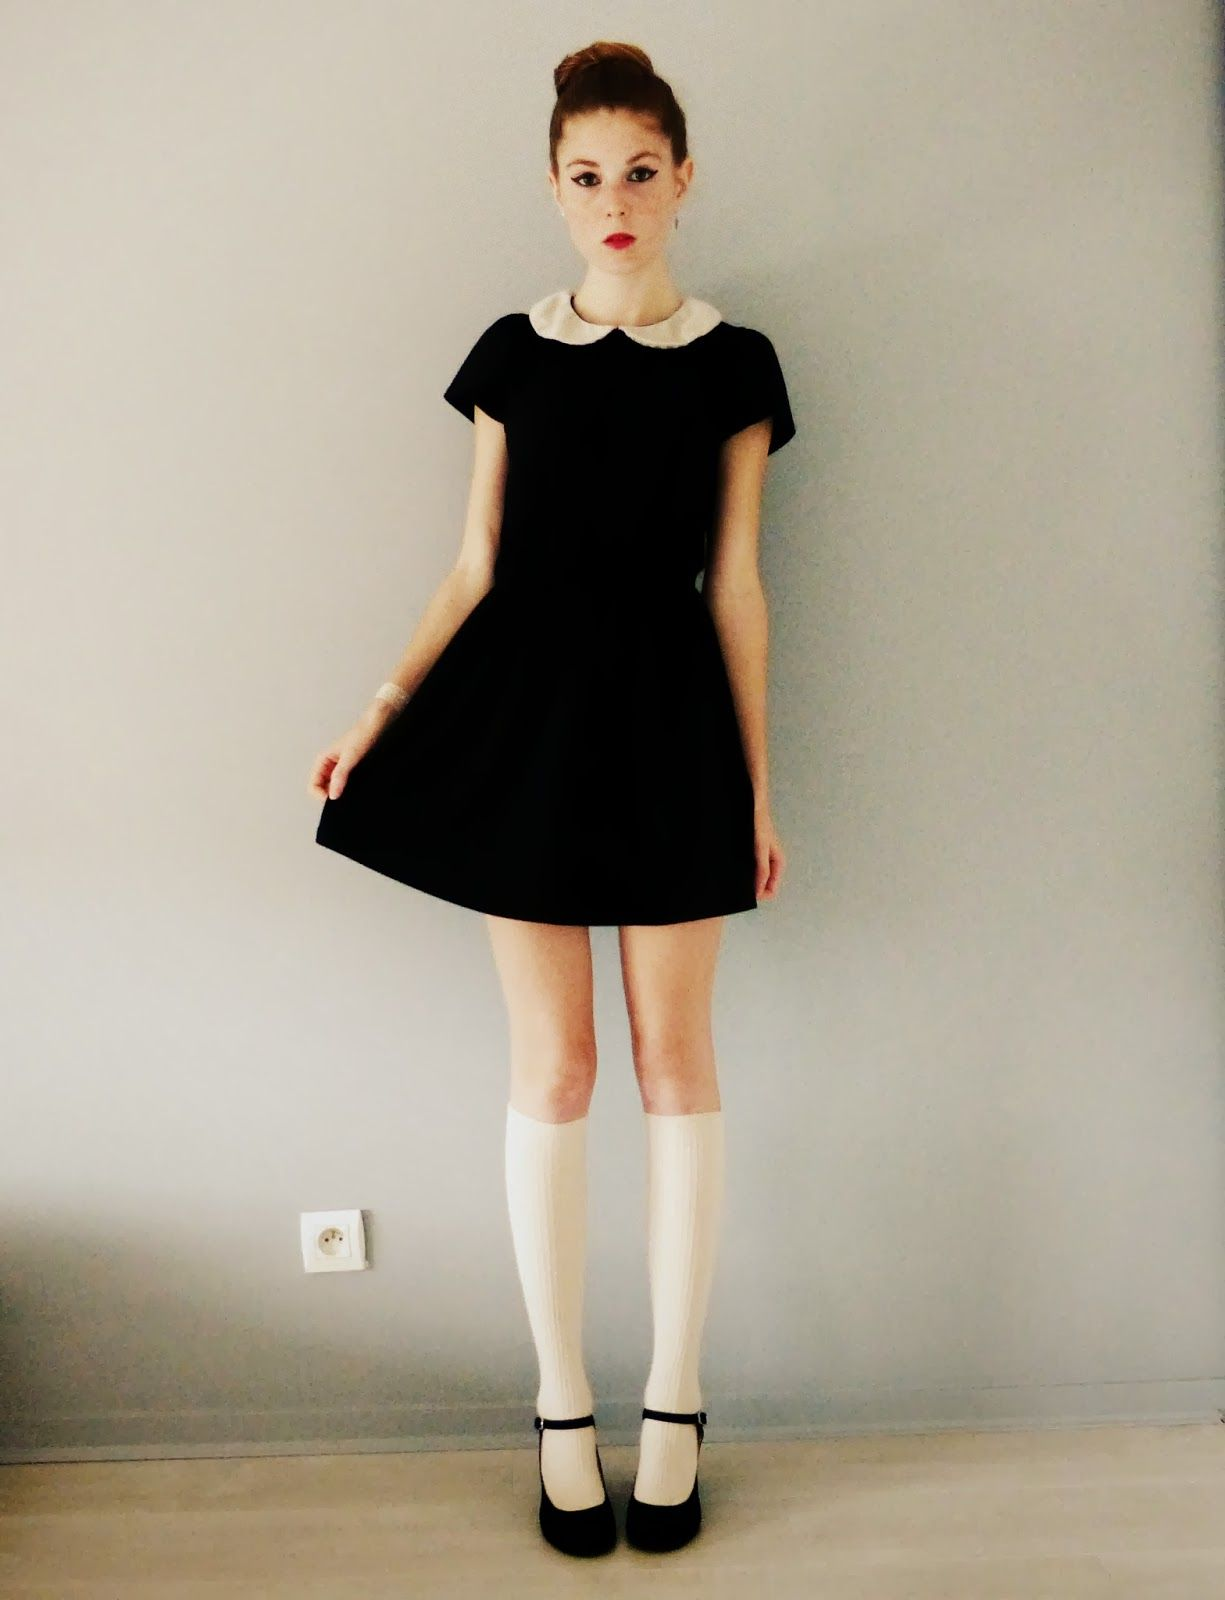 Black dress with white peter pan collar - Find This Pin And More On Fashion Simple Black Dress With The Peter Pan Collar